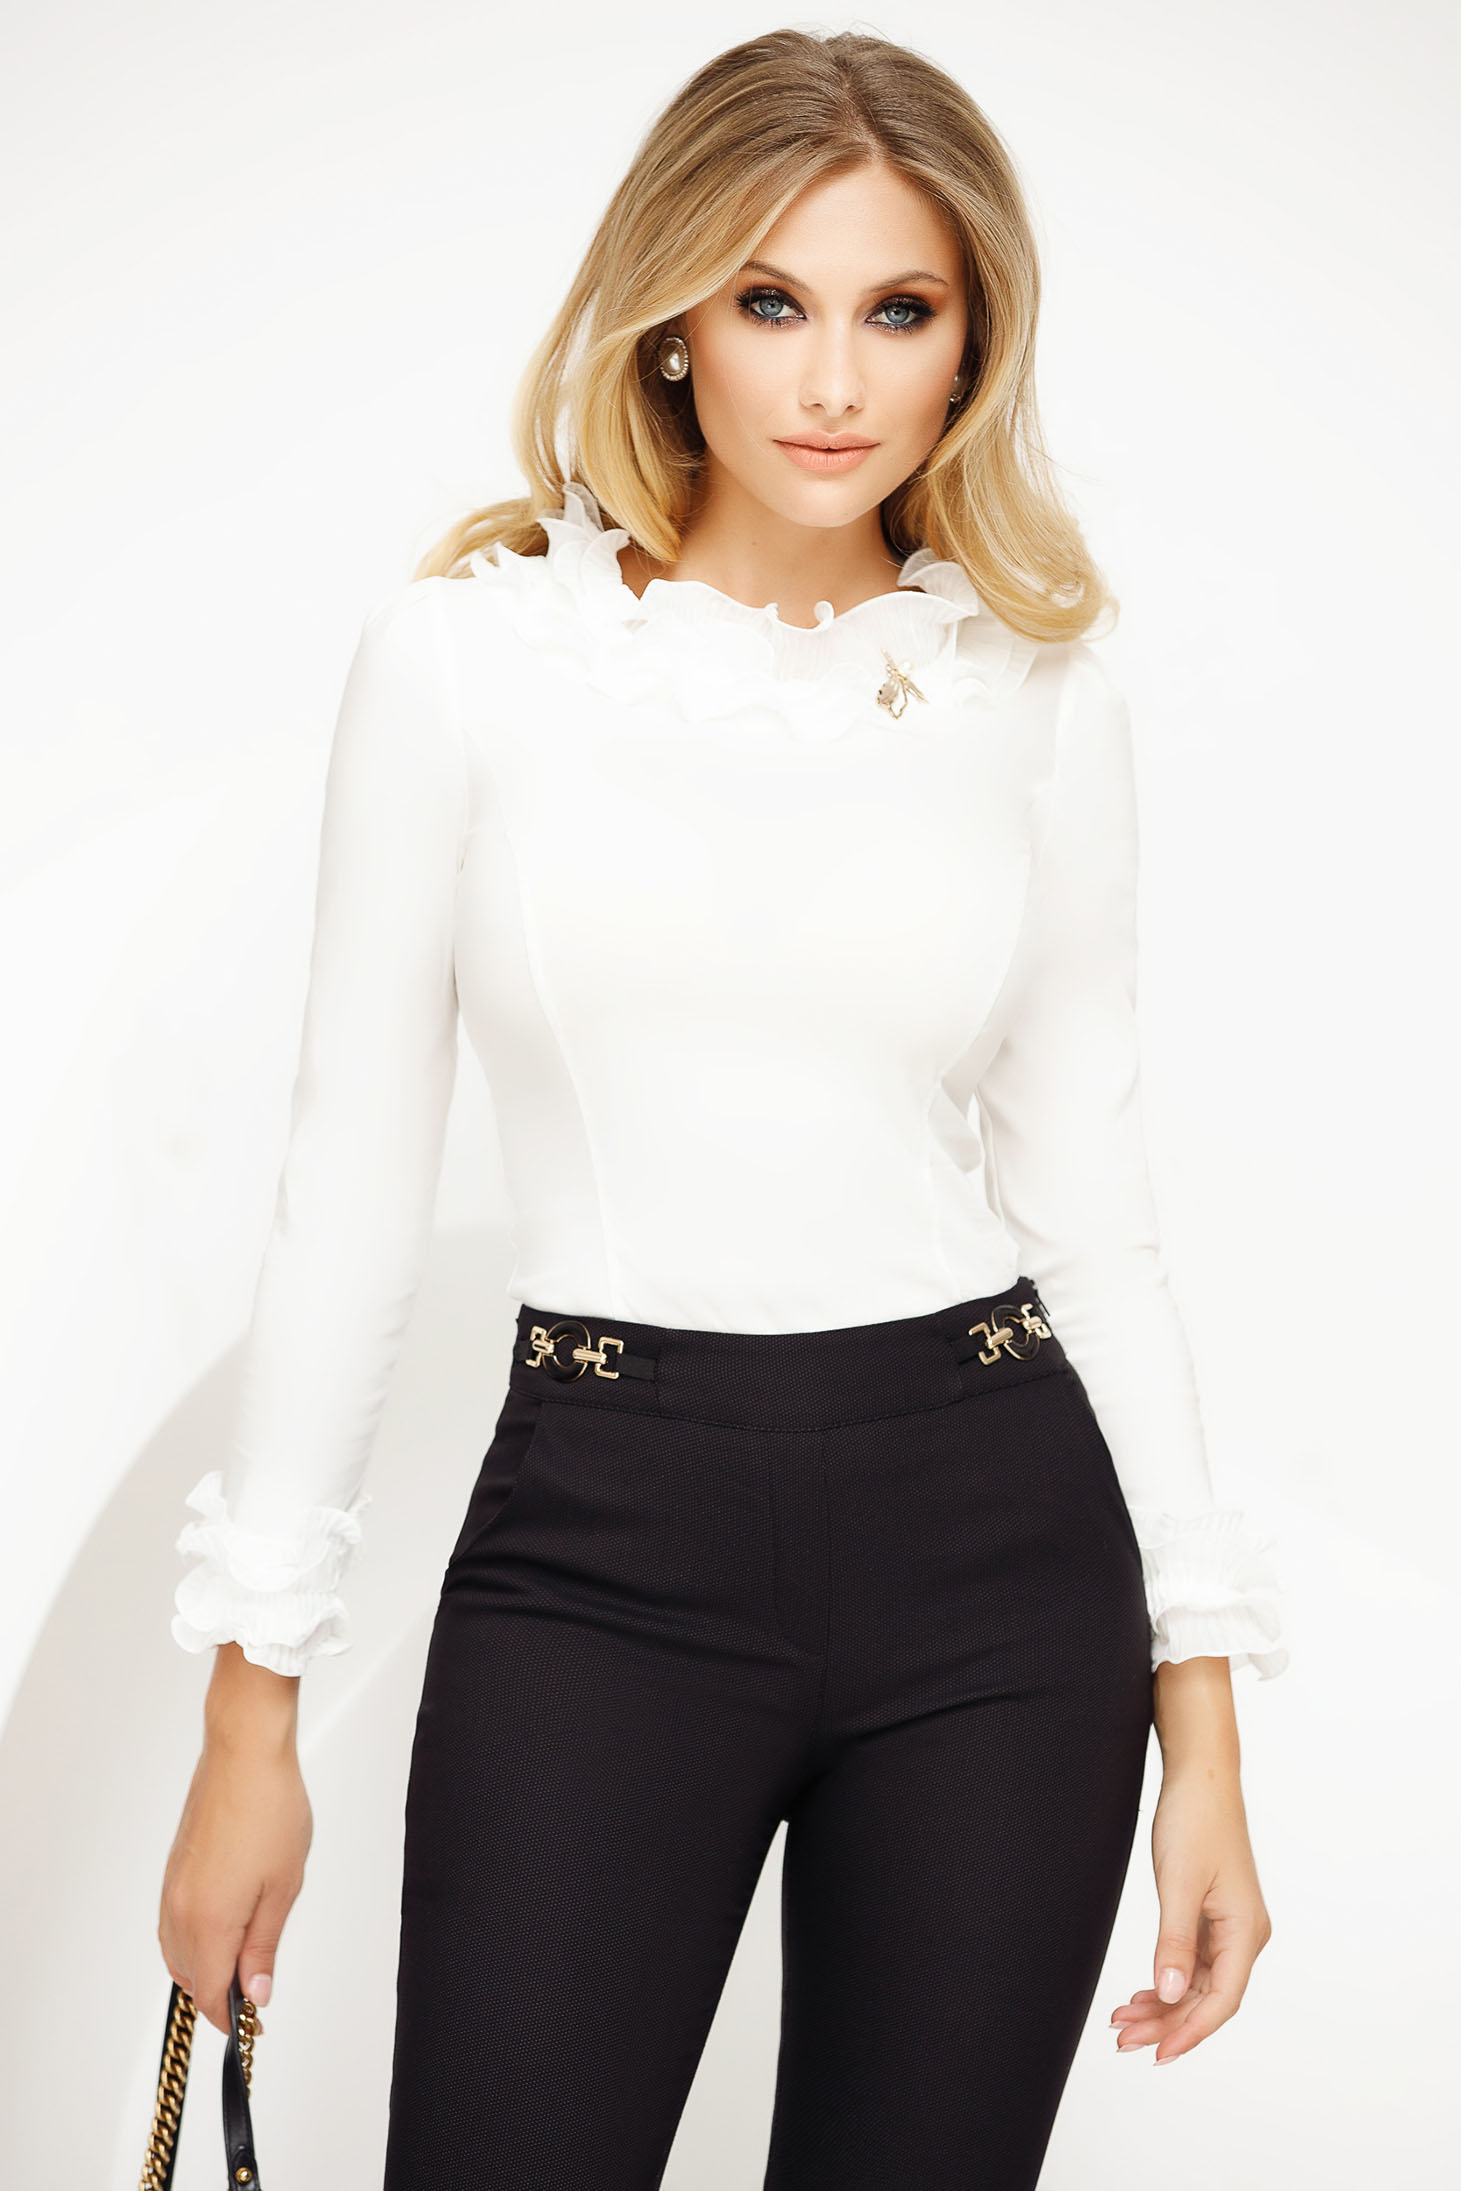 Women`s shirt white elegant with tented cut slightly elastic cotton ruffled collar with metalic accessory